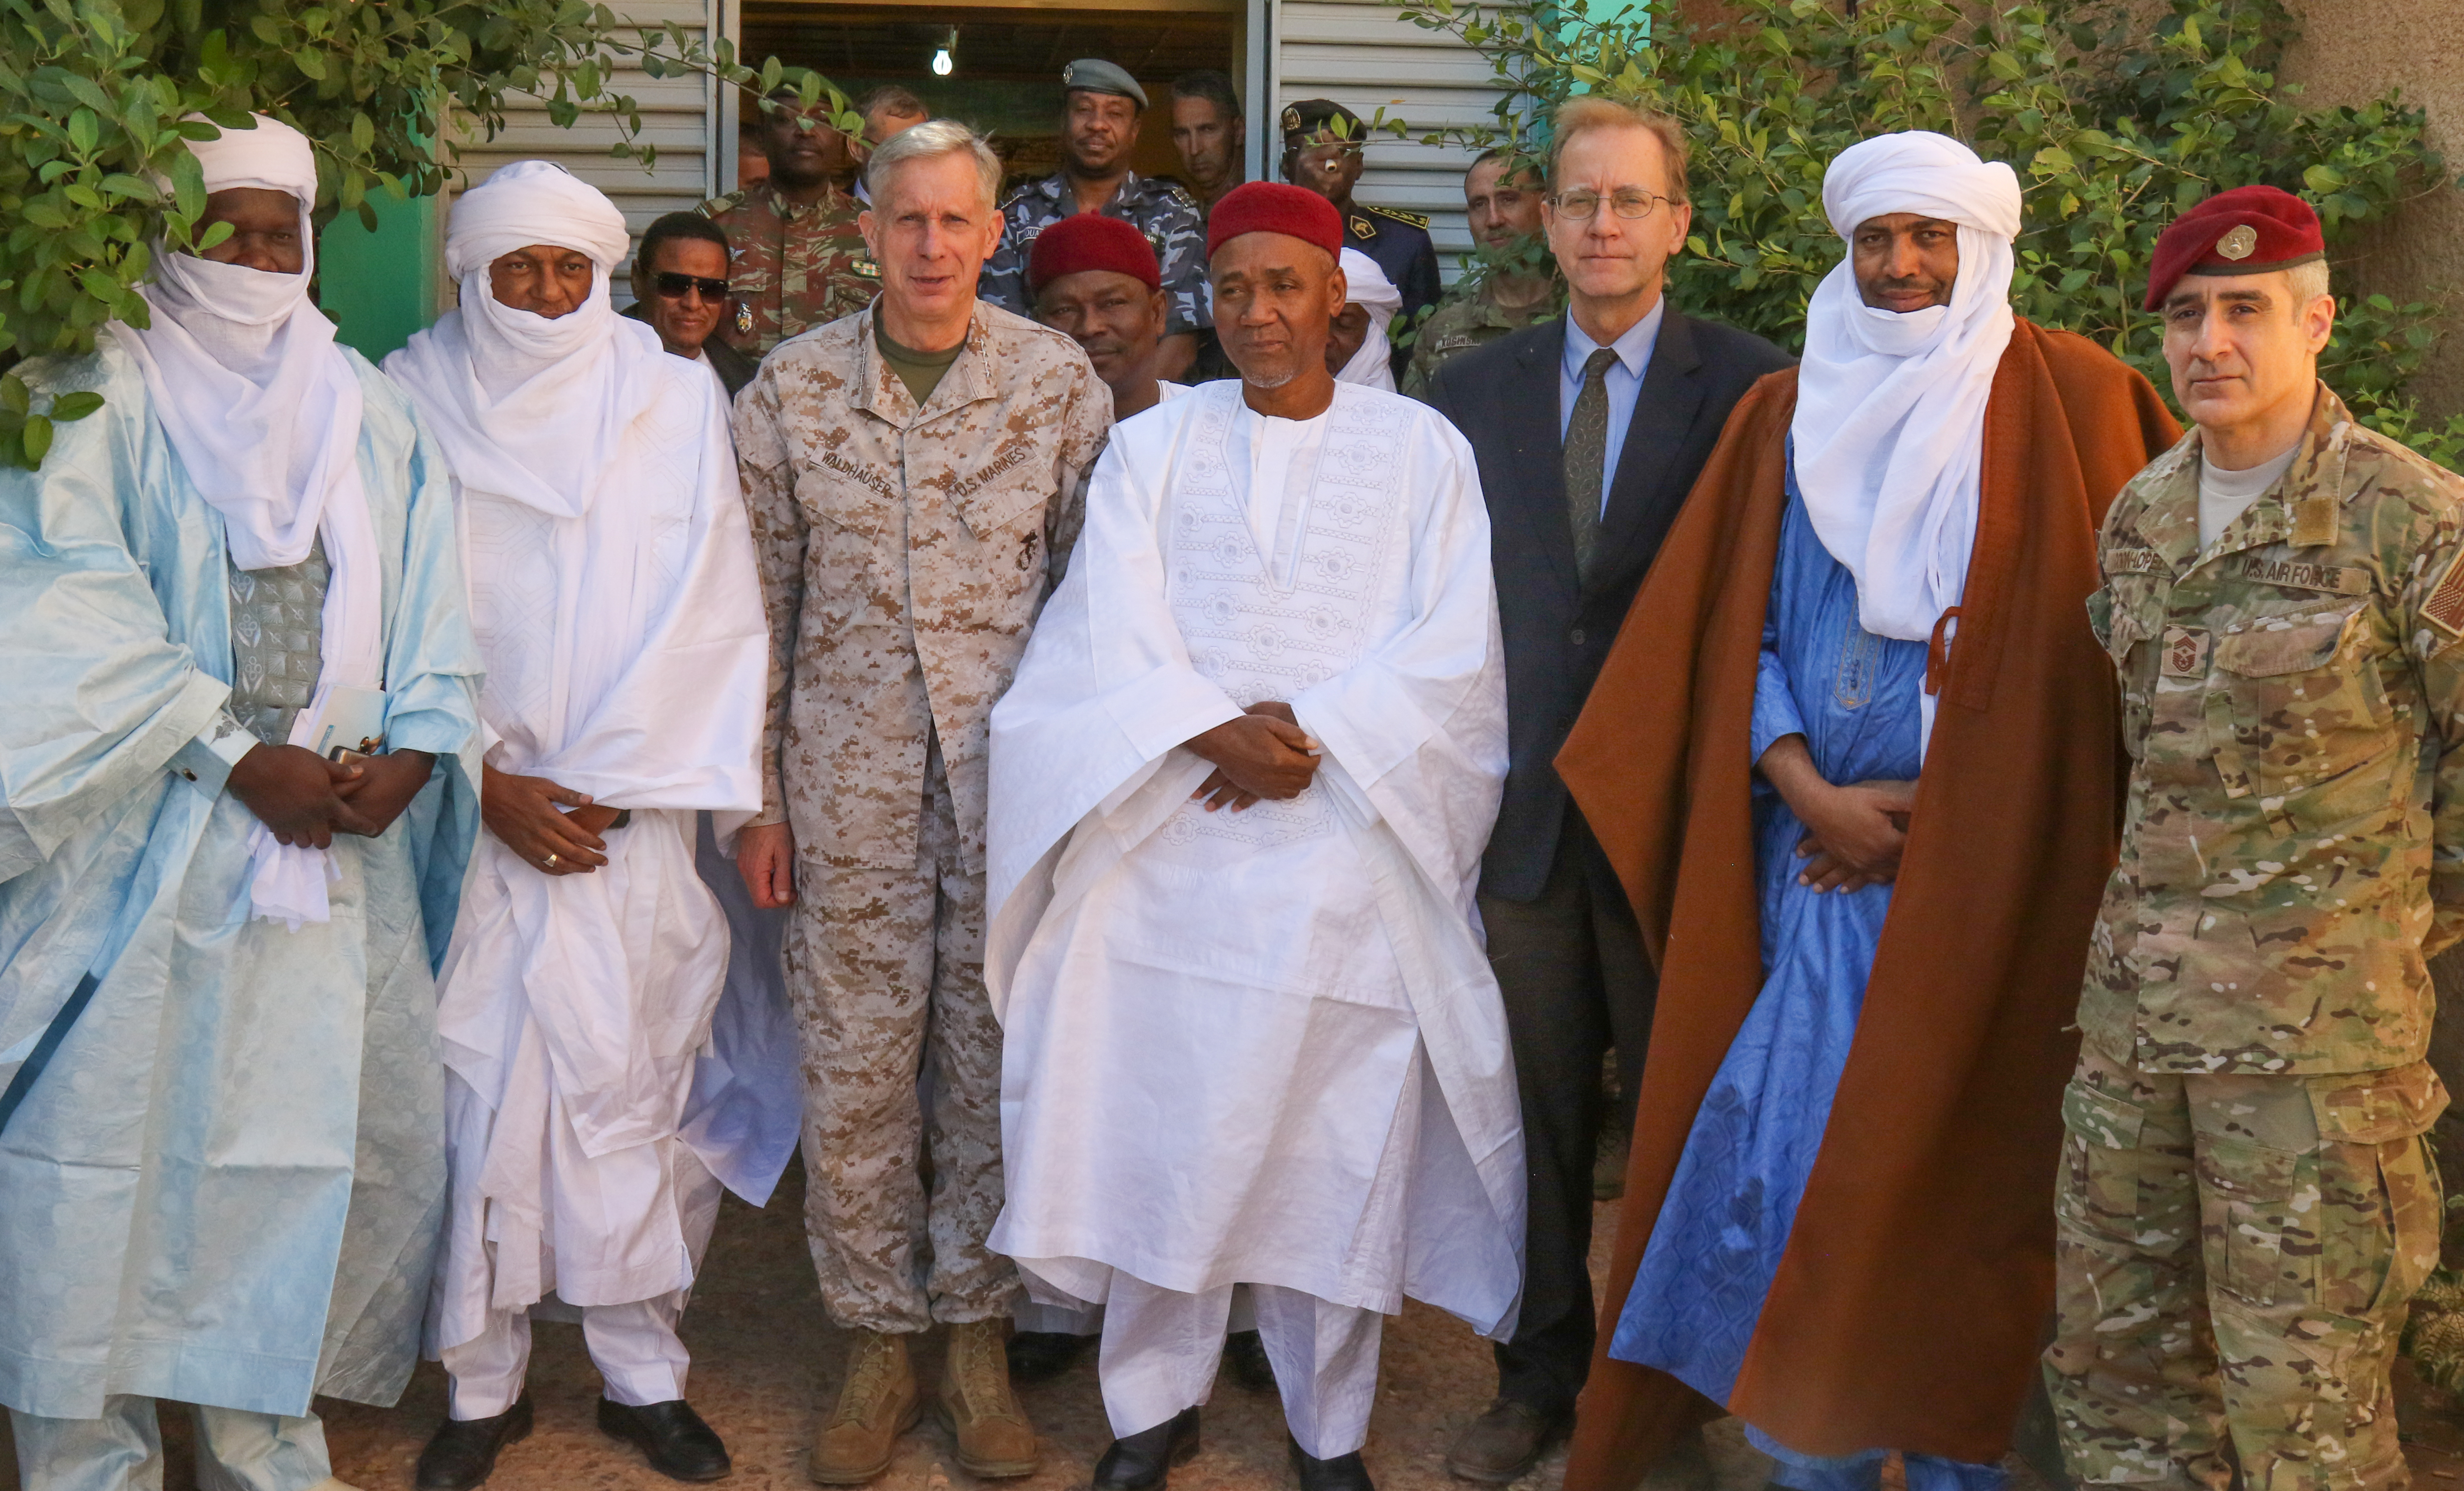 U.S. Marine Corps Gen. Thomas D. Waldhauser, commander, U.S. Africa Command, and U.S. Air Force Chief Master Sgt. Ramon Colon-Lopez, AFRICOM command senior enlisted leader, pose for a group photo with civic and government leaders from Agadez, Niger Jan. 25, 2018.